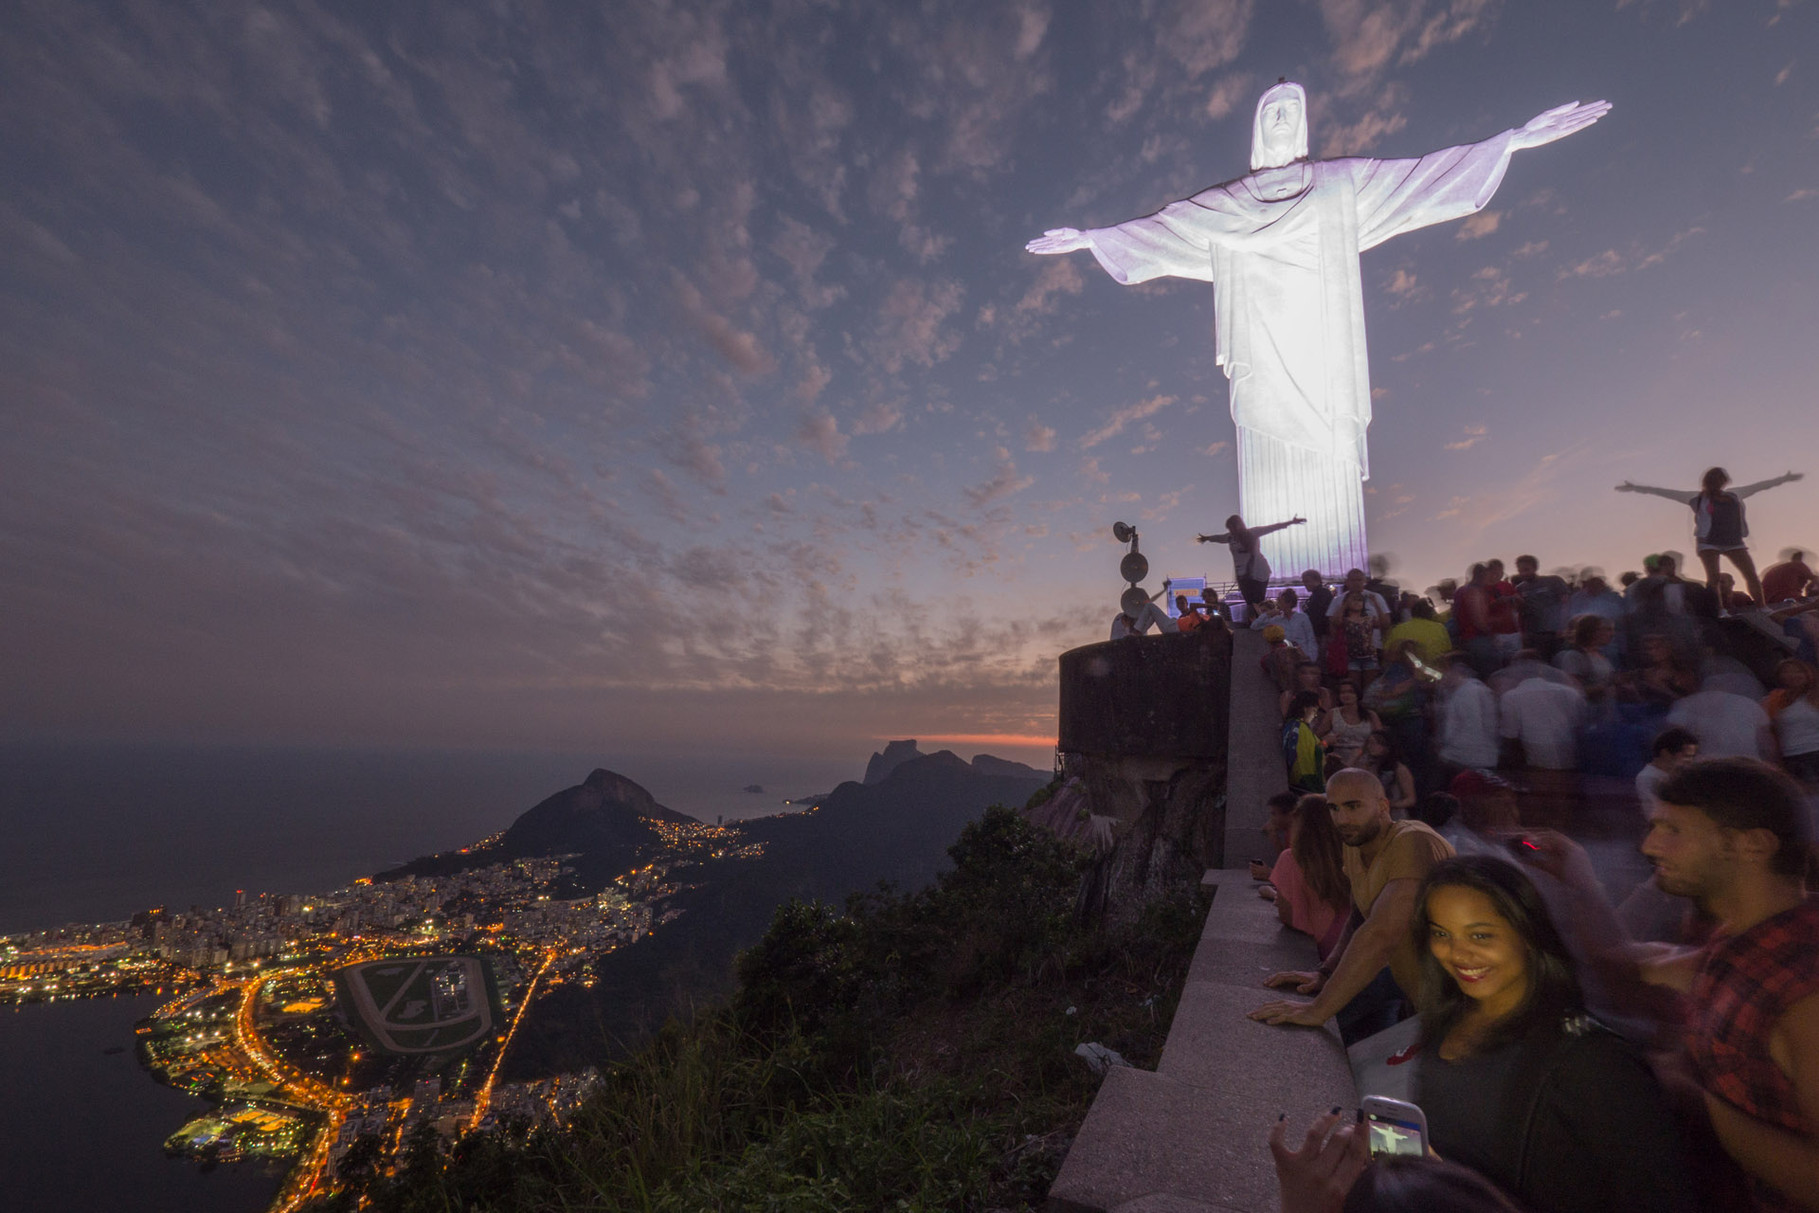 Corcovado (Christ the Redeemer statue)